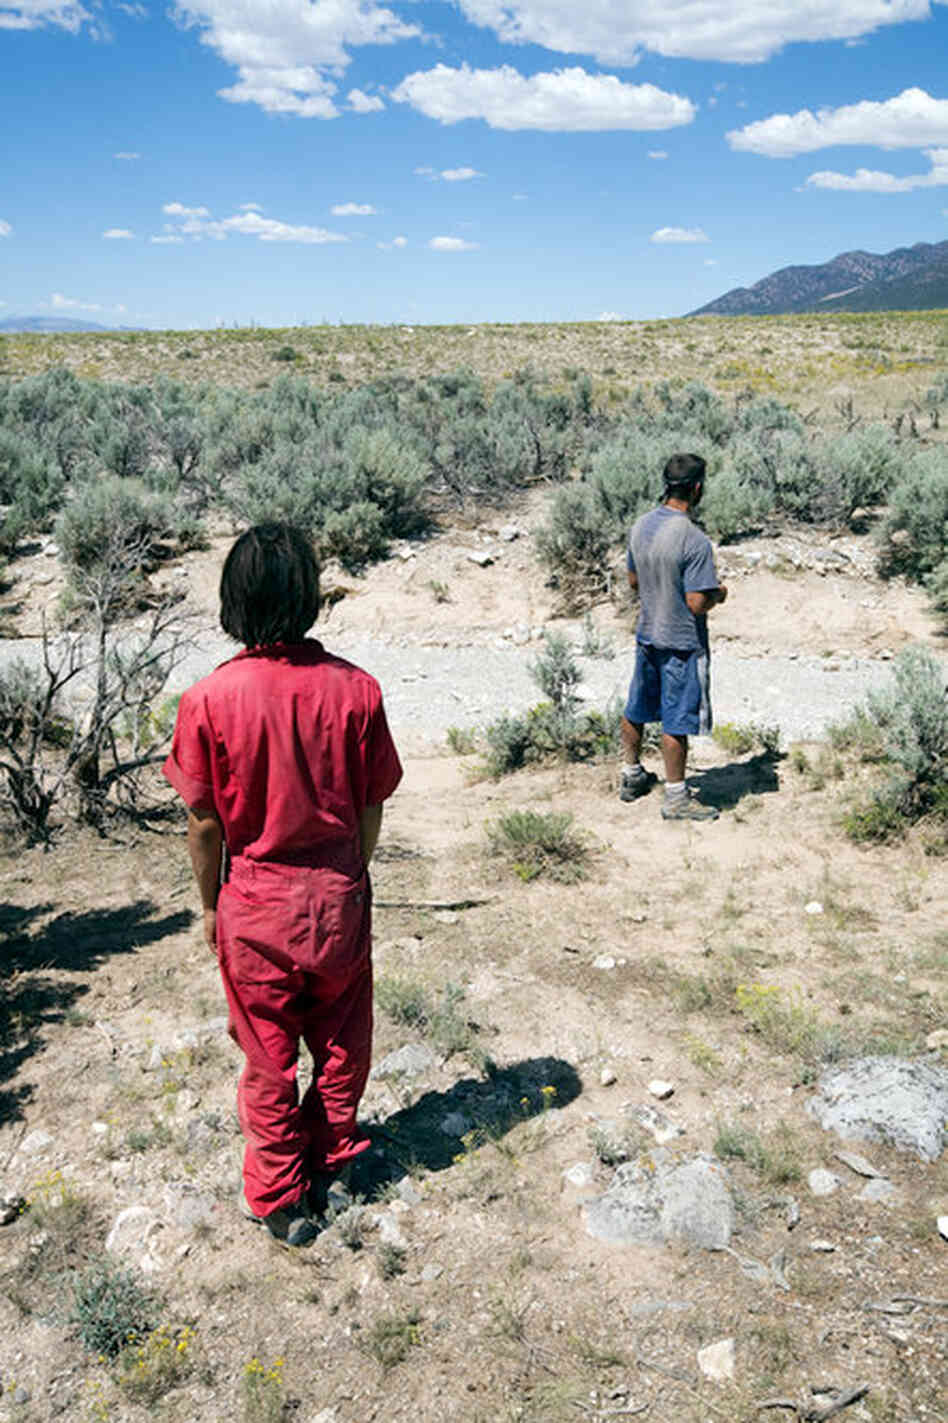 "Red Cliff Ascent is a privately-owned wilderness camp outside Springville, Utah. ""I have to wear this red jumpsuit because I'm a 'flight risk.'"" - P.C, age 15."